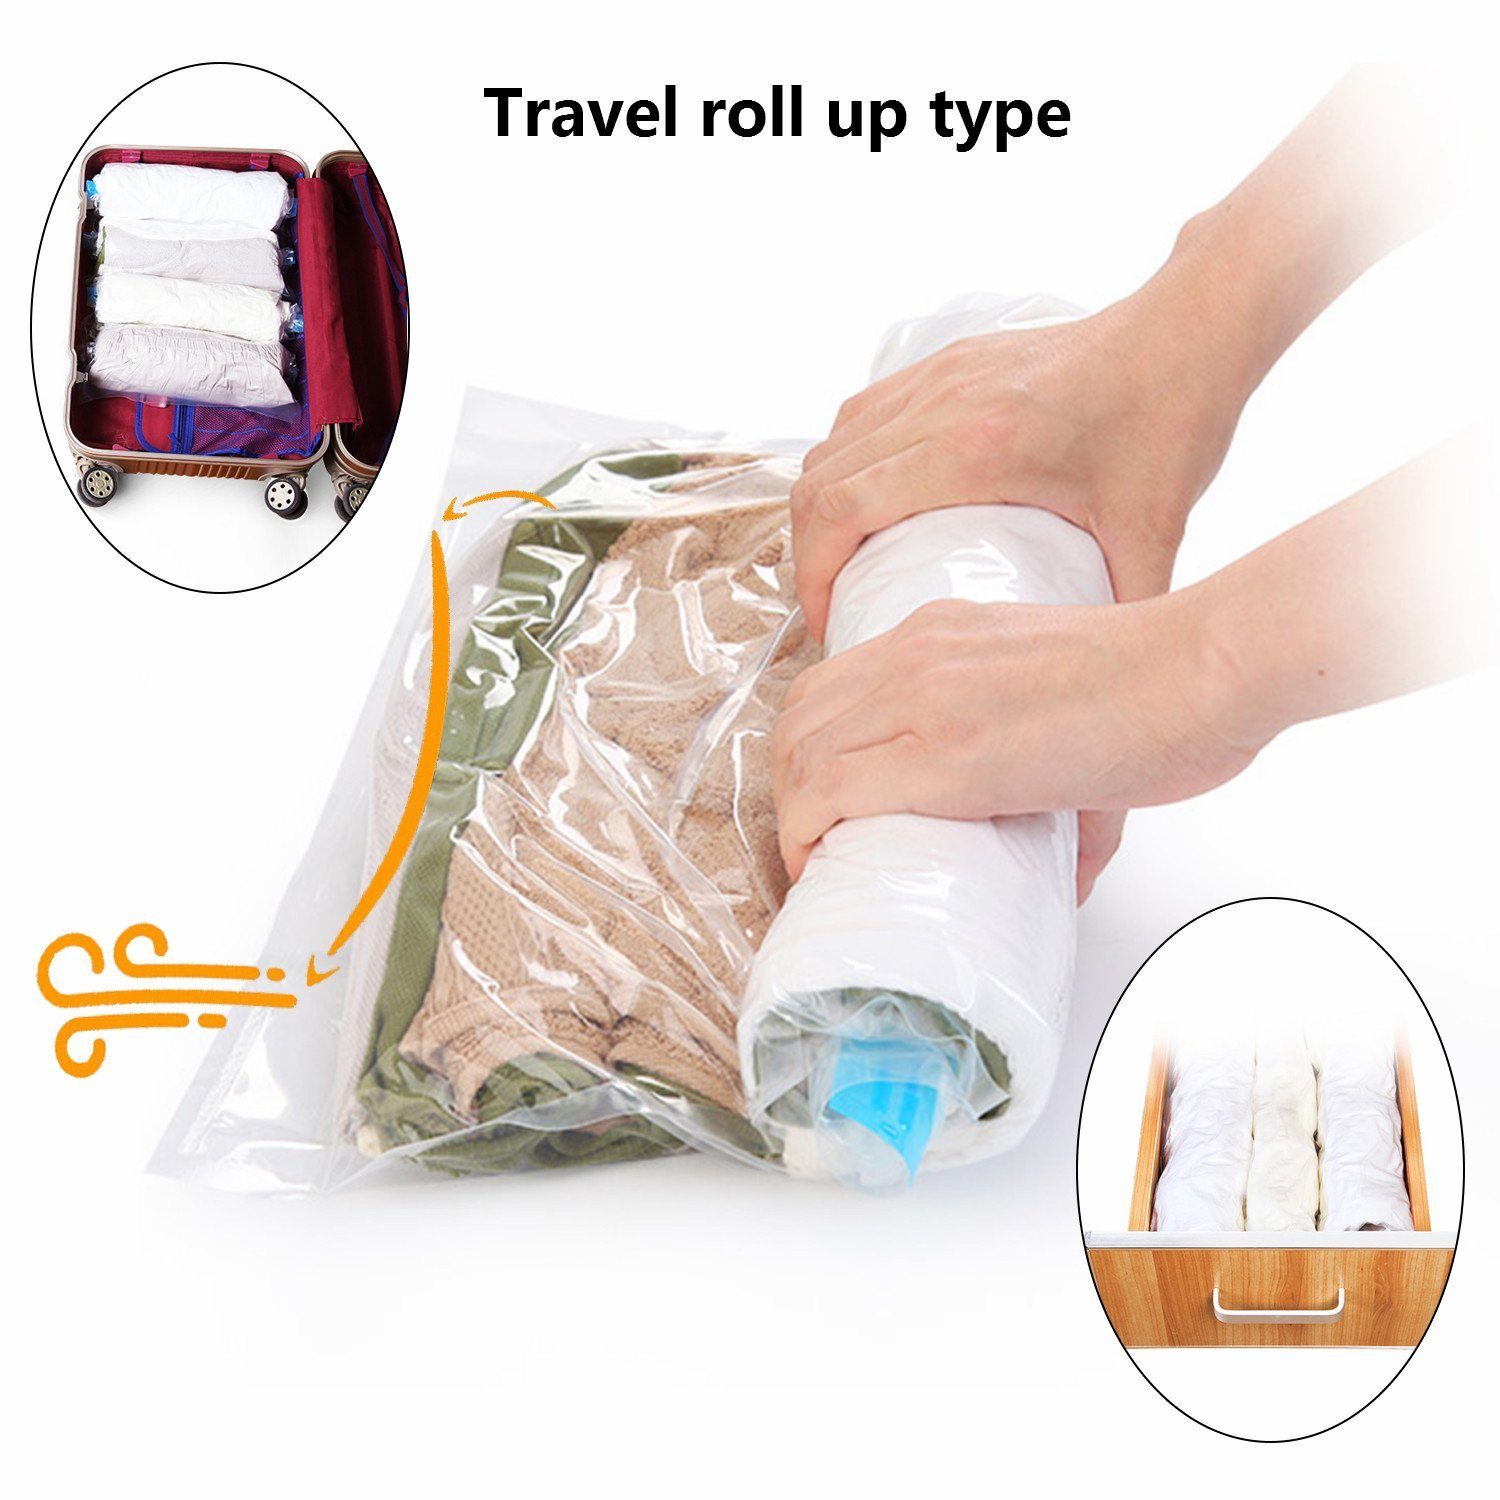 Rollable up space saver bag